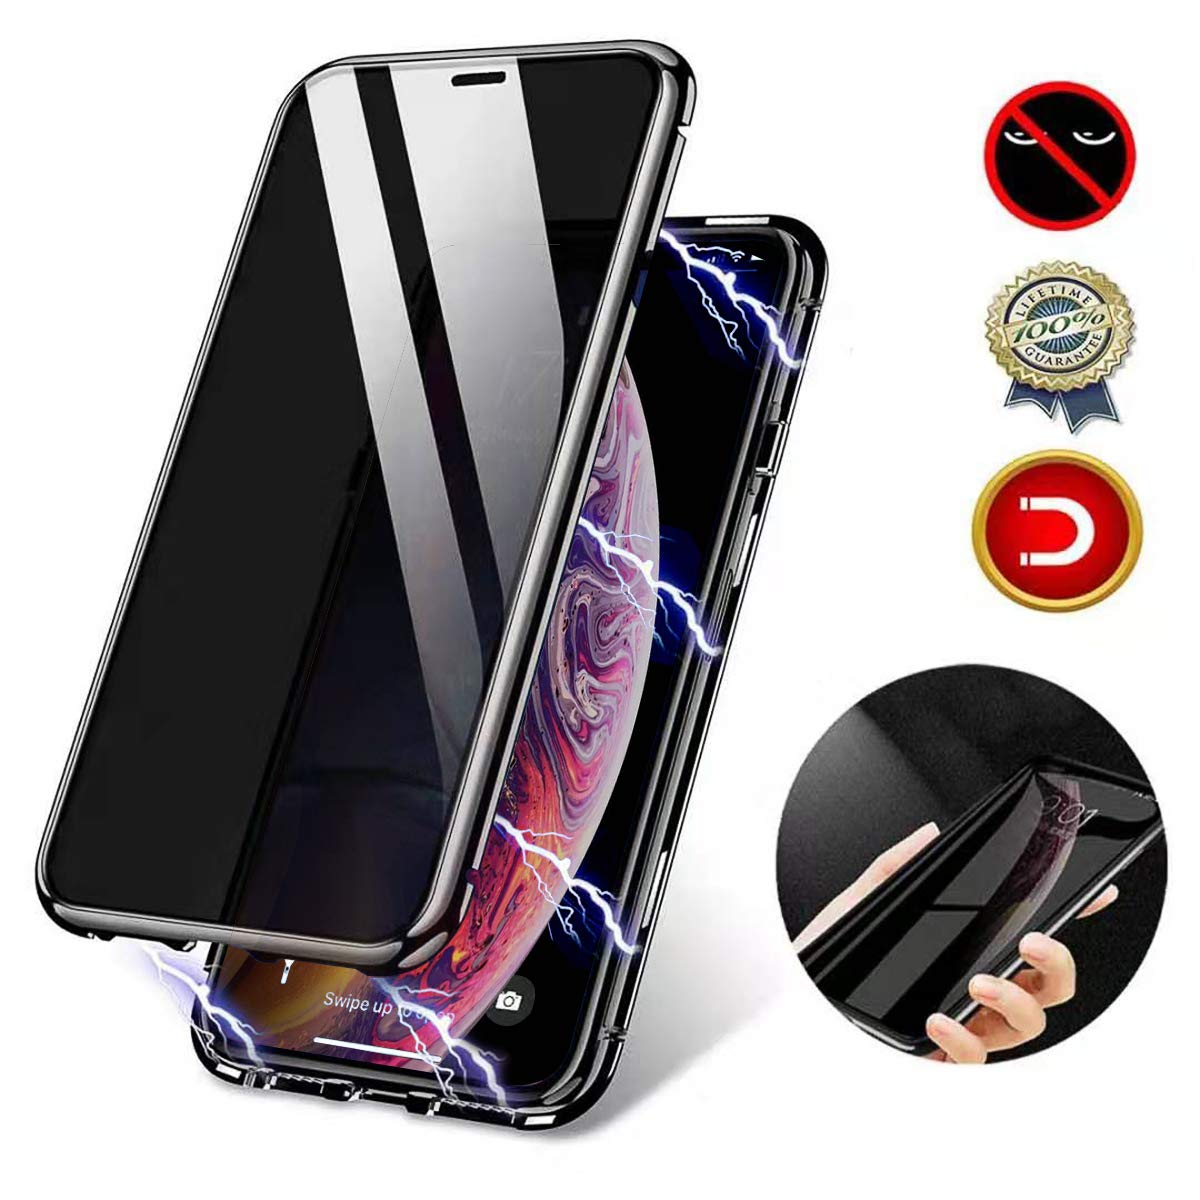 Privacy Magnetic Case Fit for iPhone 11 Pro Anti-peep Clear Double Sided Tempered Glass Magnetic Adsorption Double-Sided Privacy Screen Protector Anti-spy Case for iPhone 11 Pro Black